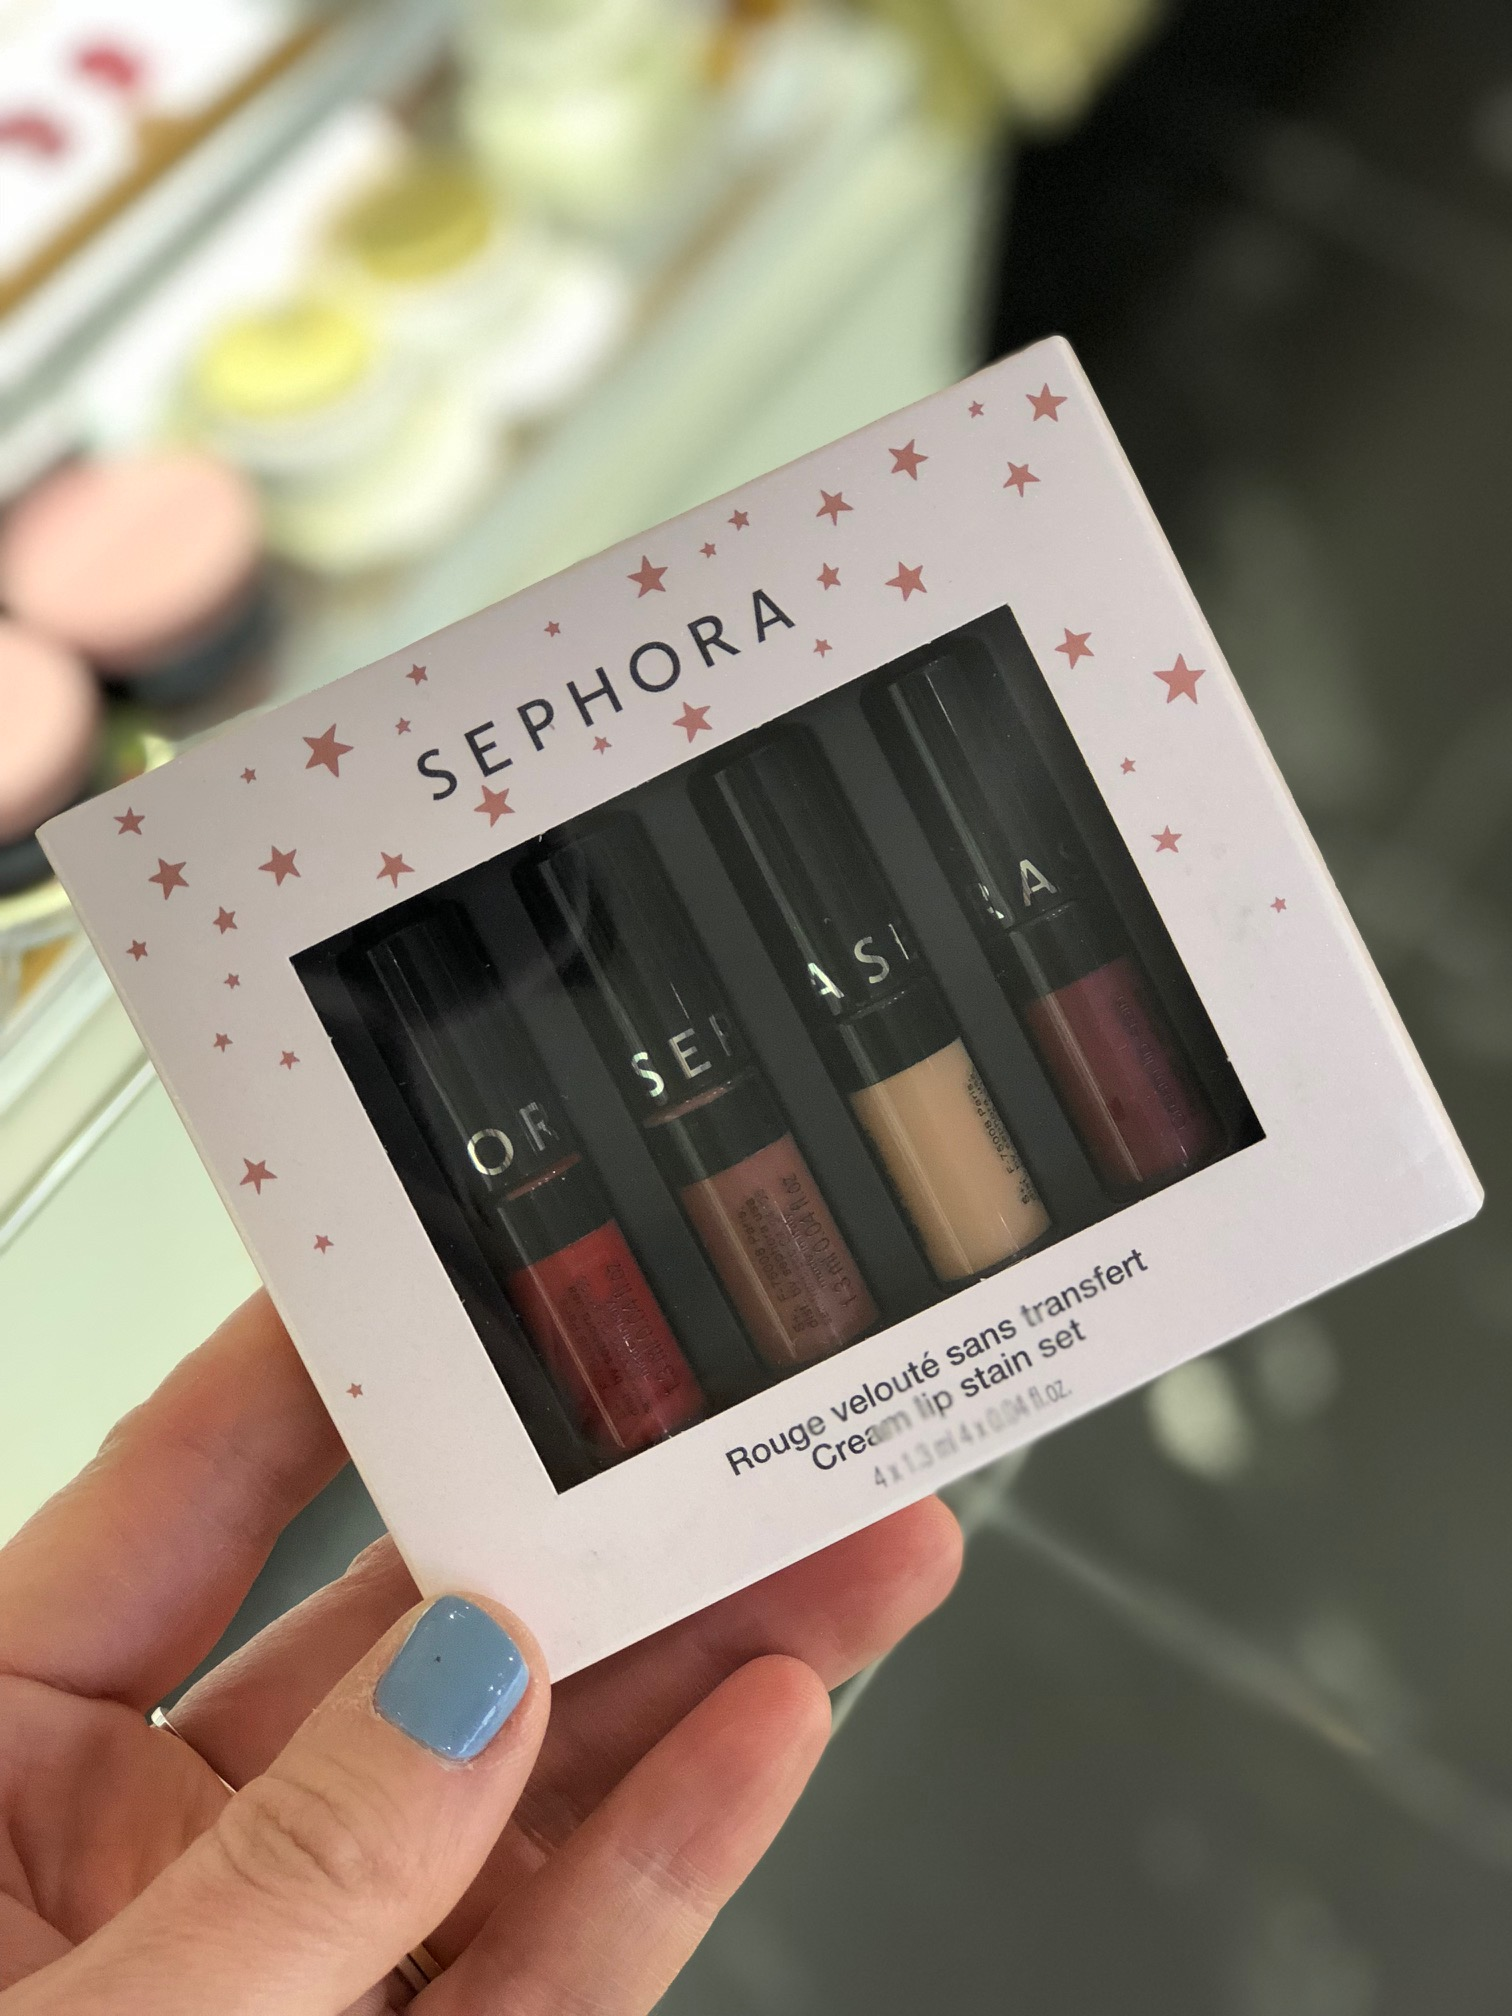 10 last-minute beauty gifts at Sephora in JCPenney: Sephora Collection Cream Lip Stain set